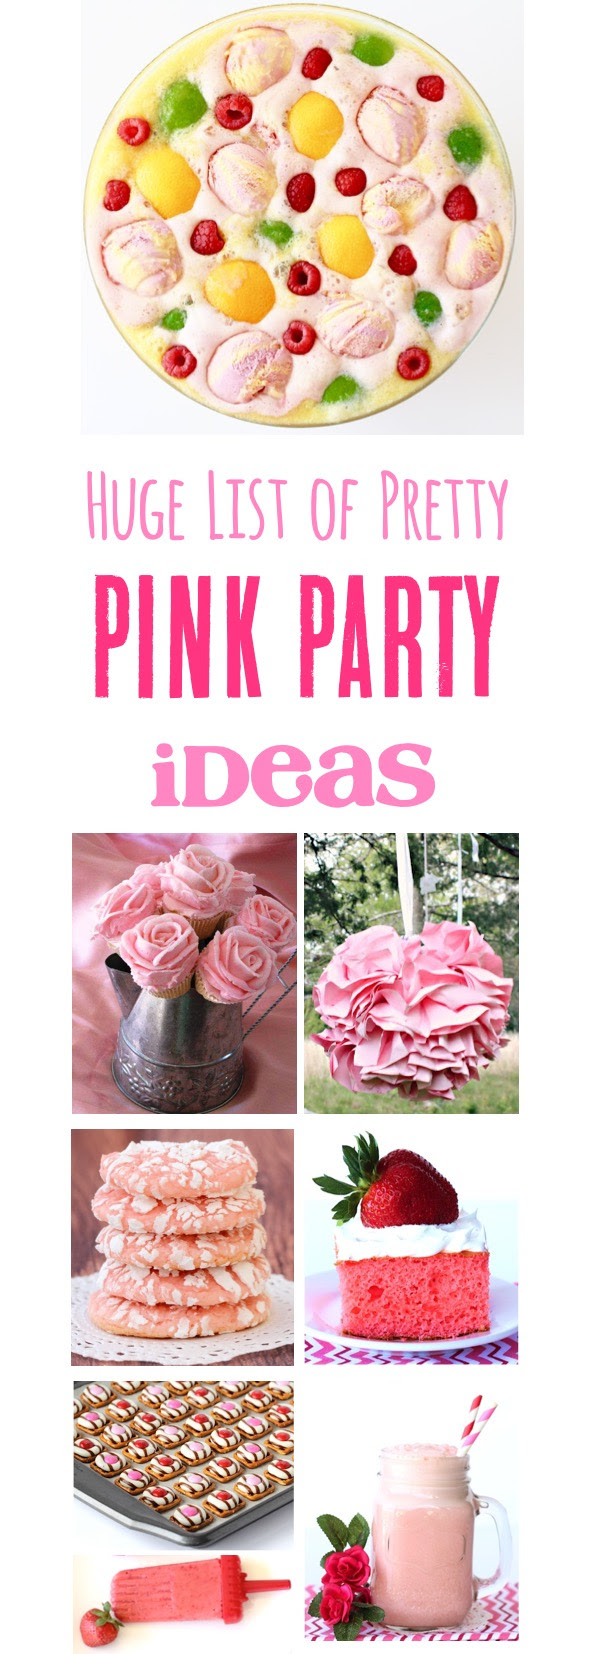 26 Pink Birthday Party Ideas The Frugal Girls